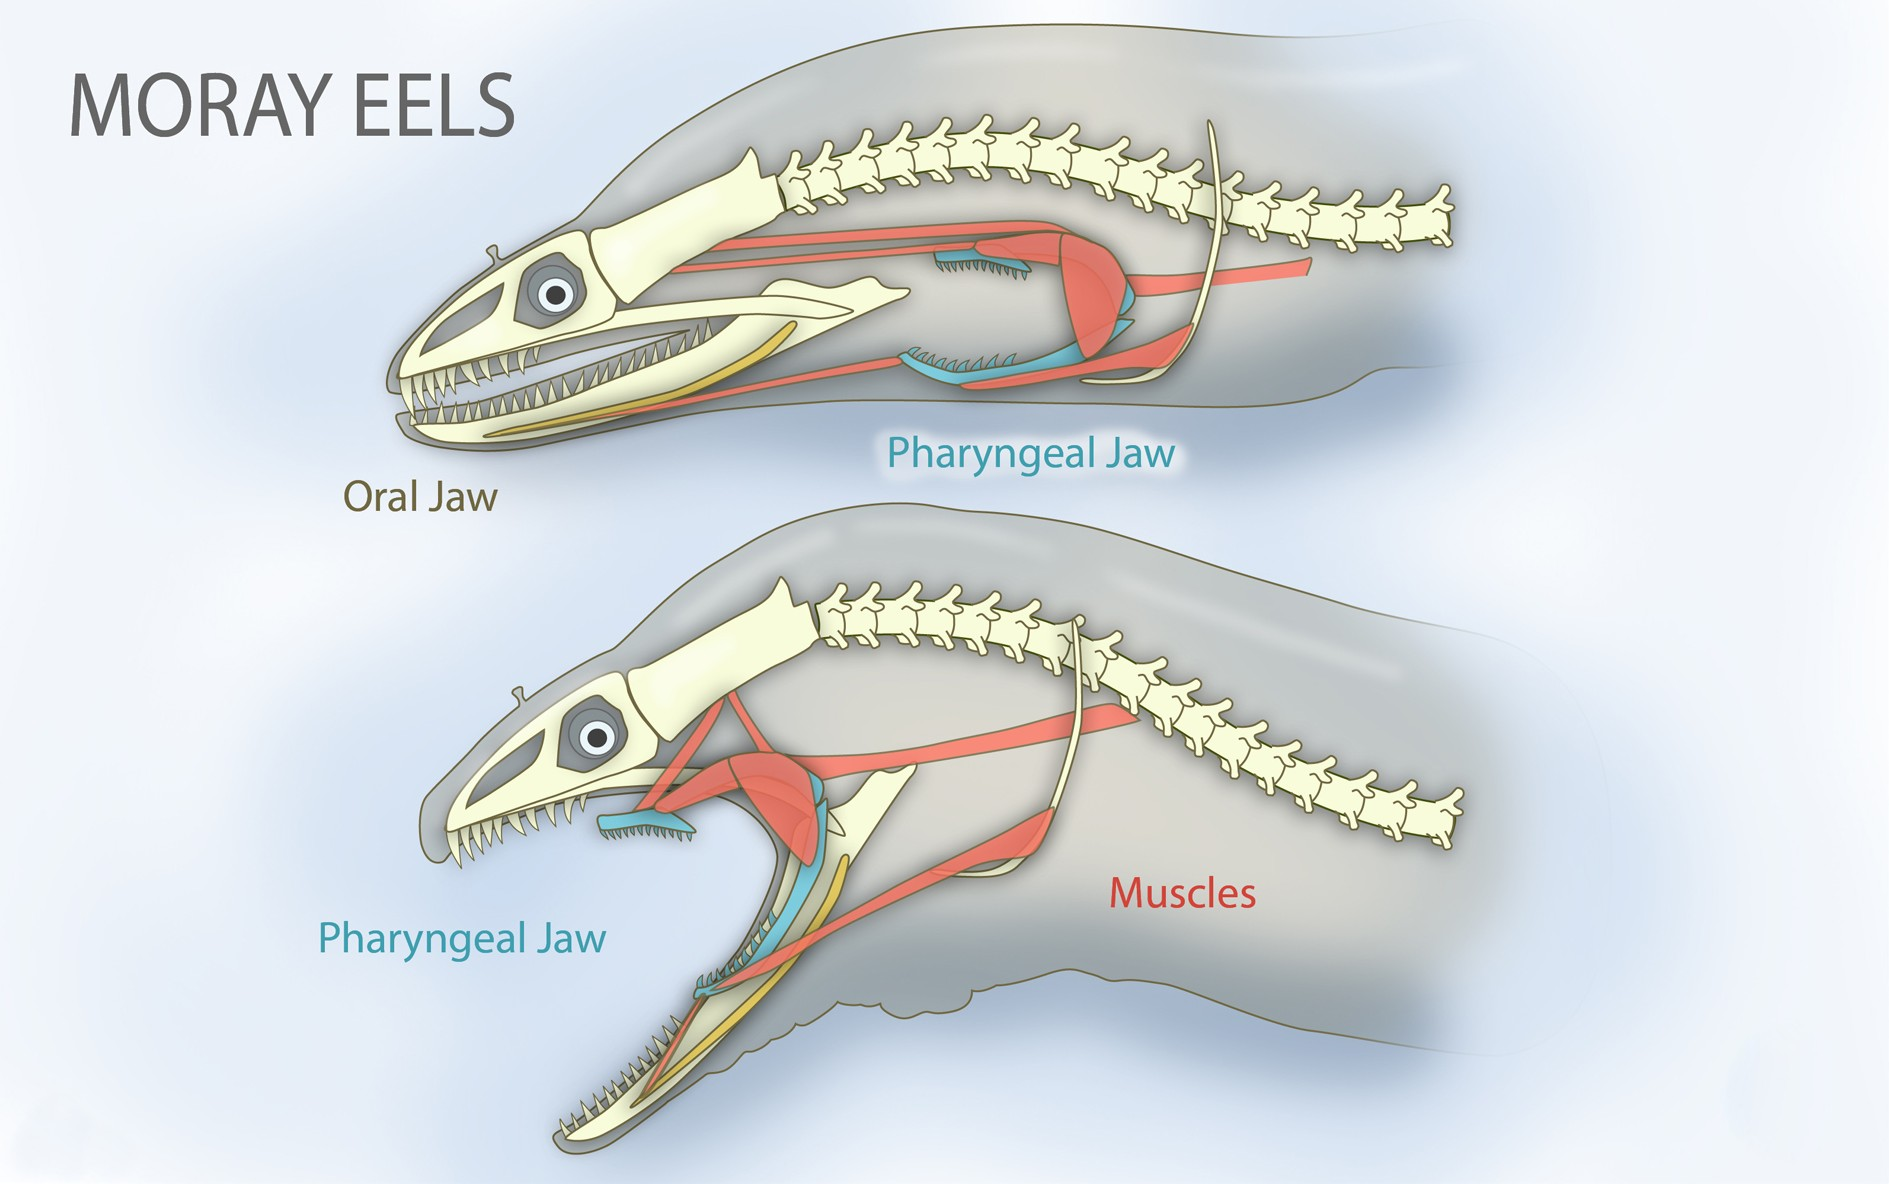 hight resolution of file pharyngeal jaws of moray eels jpg